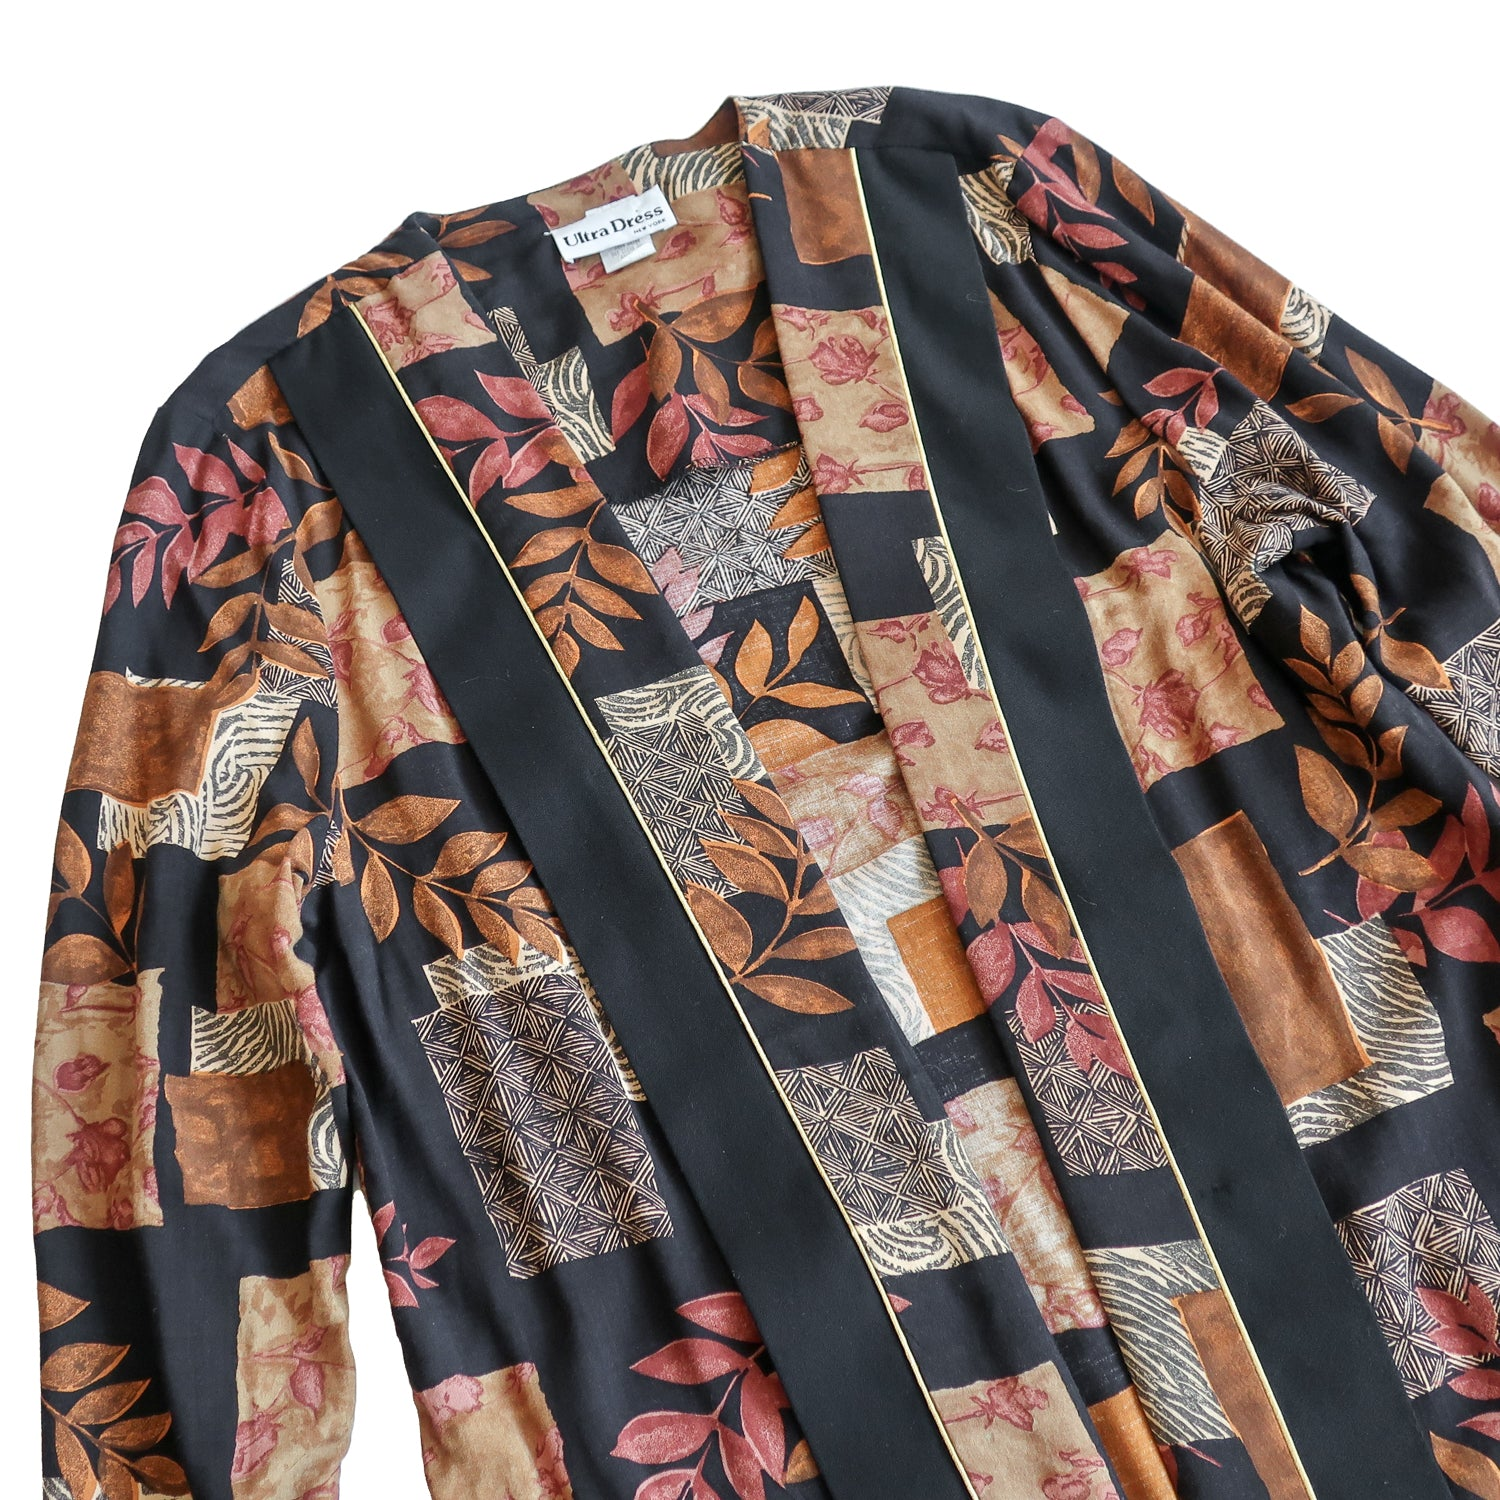 Second Room Vintage Clothing. Vintage open cardigan with no buttons or closures, with fall leaves print in brown, orange and black, and gold piping trim. Rolled cuffs, not lined, and very light weight. Free North American shipping on all orders.